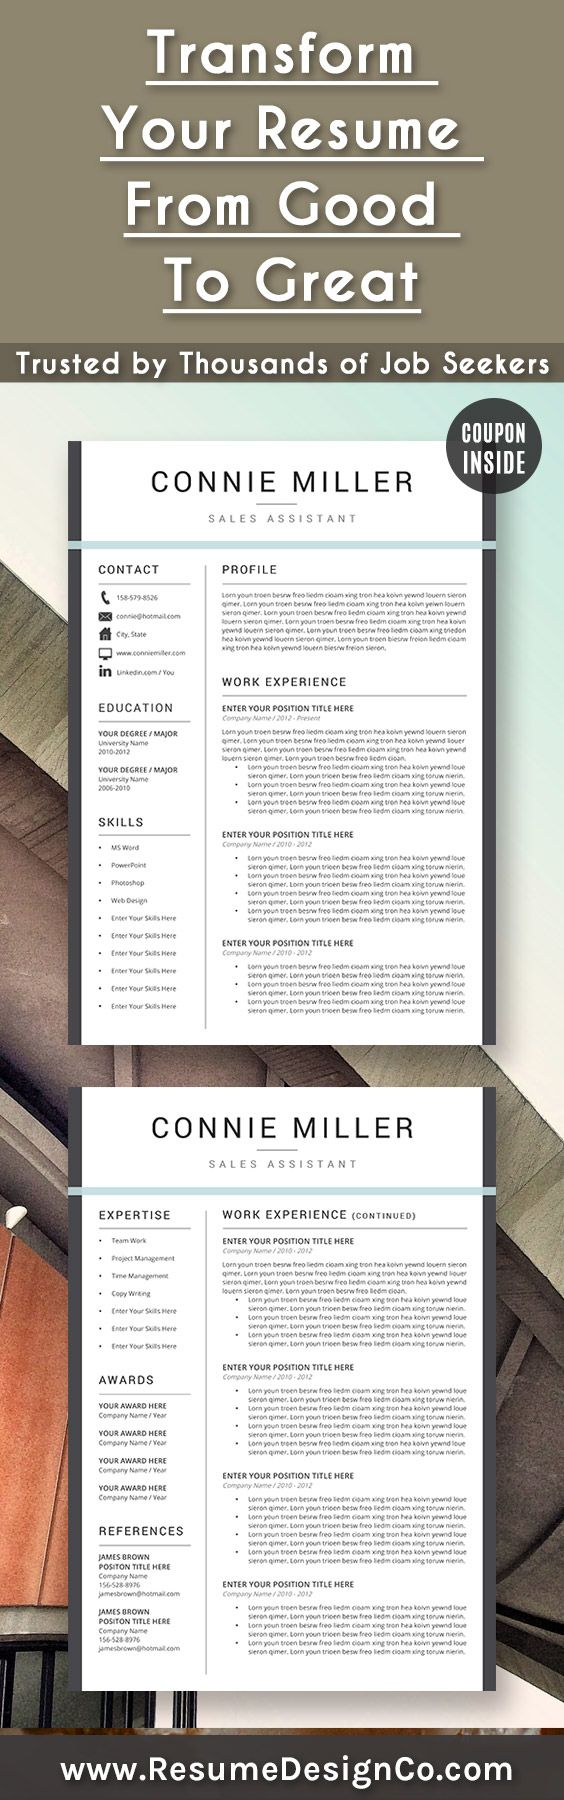 how to present your resume%0A Transform your resume from good to great  Trusted by thousands of job  seekers u